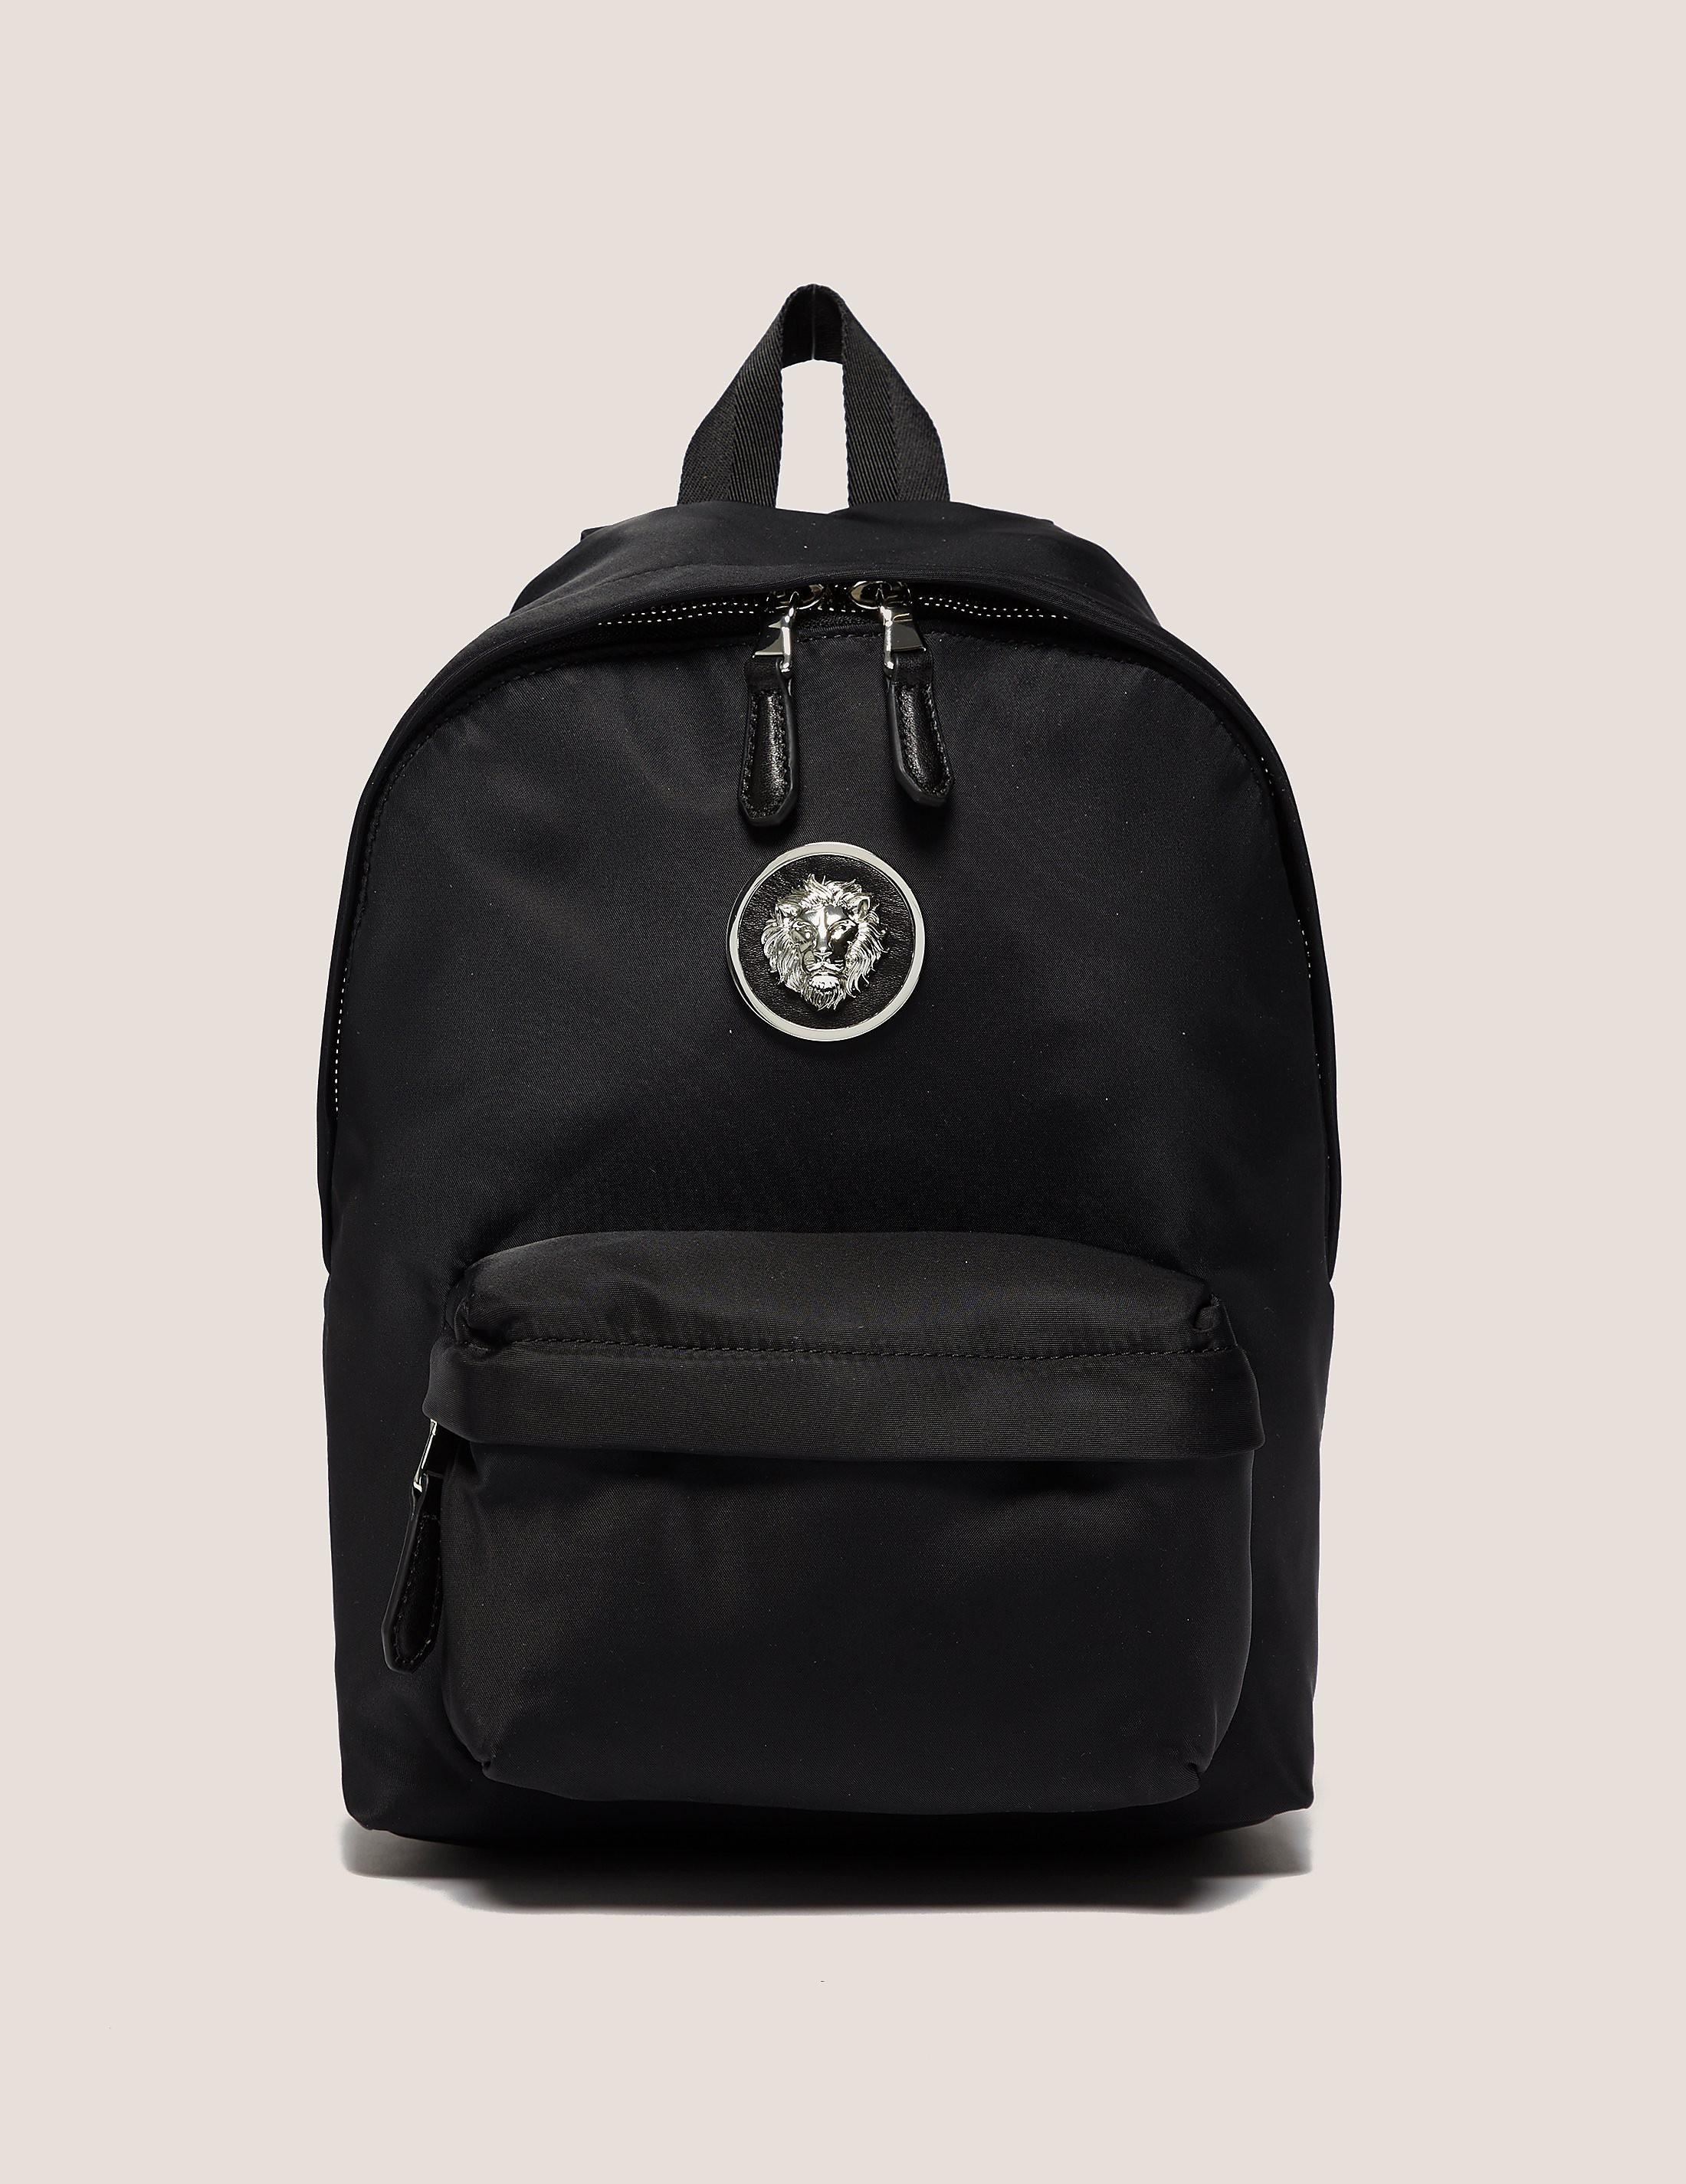 Versus Versace Lion Head Backpack